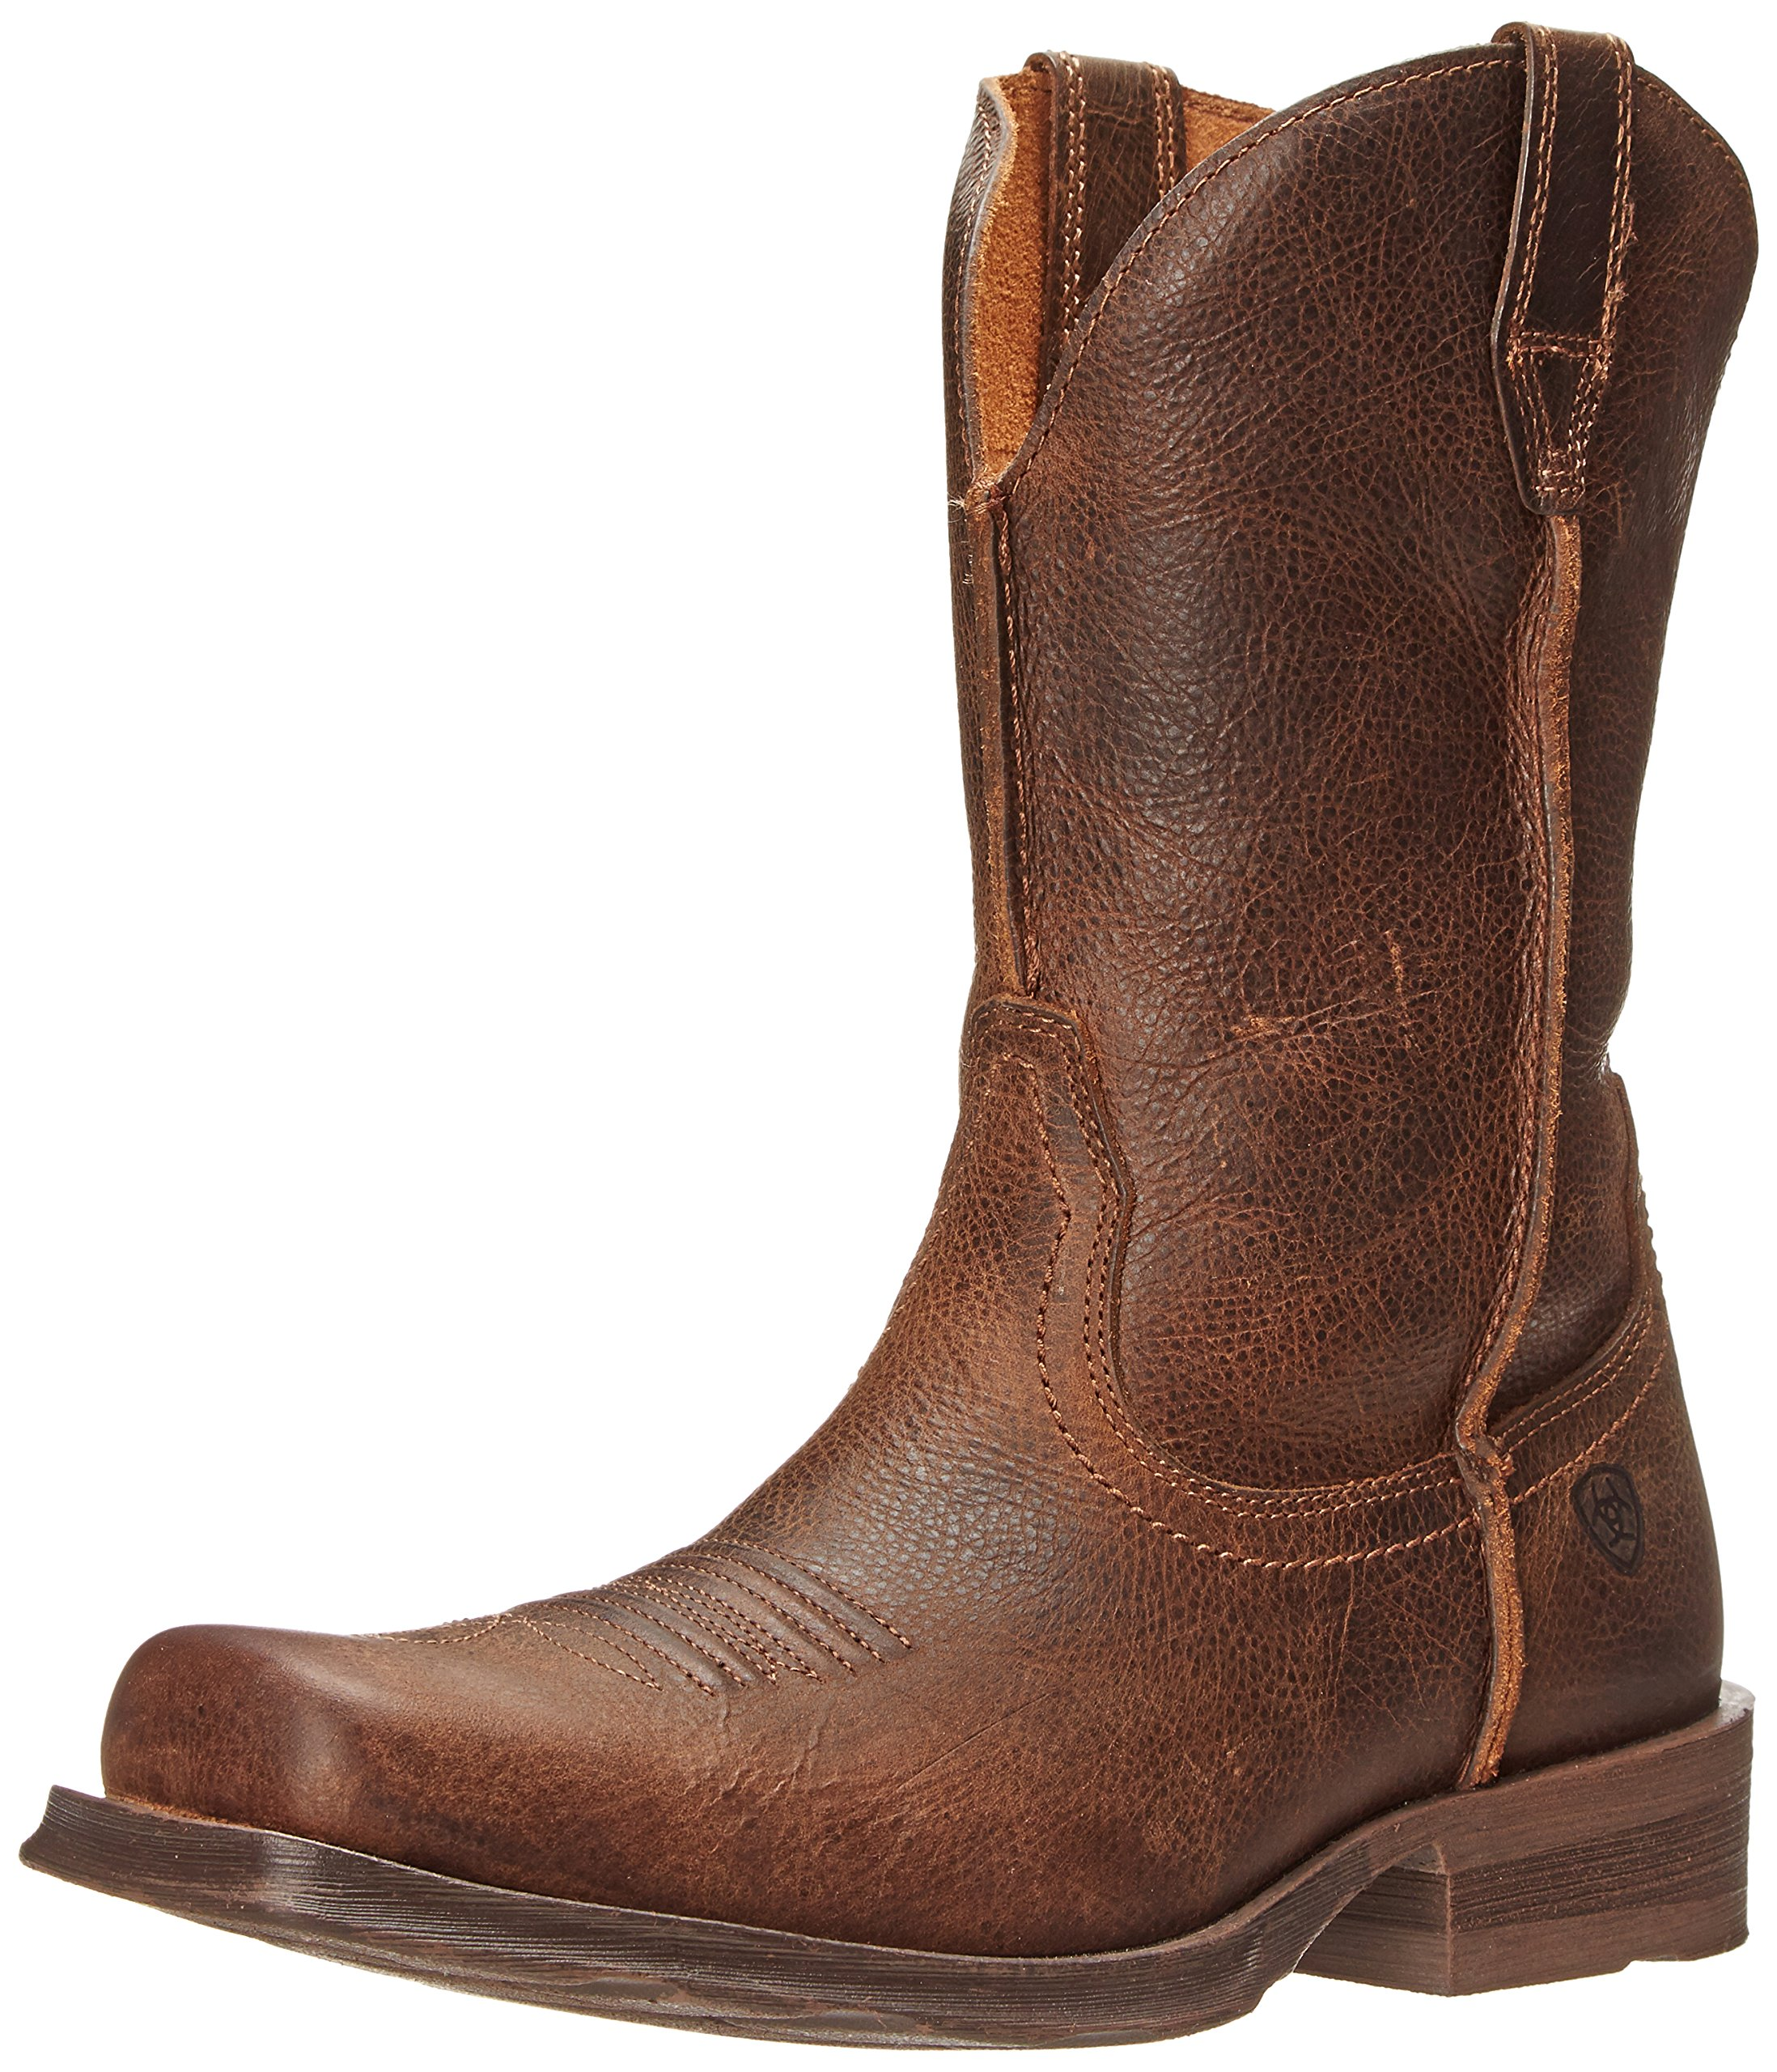 Ariat Men's Rambler Wide Square Toe Western Cowboy Boot, Wicker, 10 M US by ARIAT (Image #1)